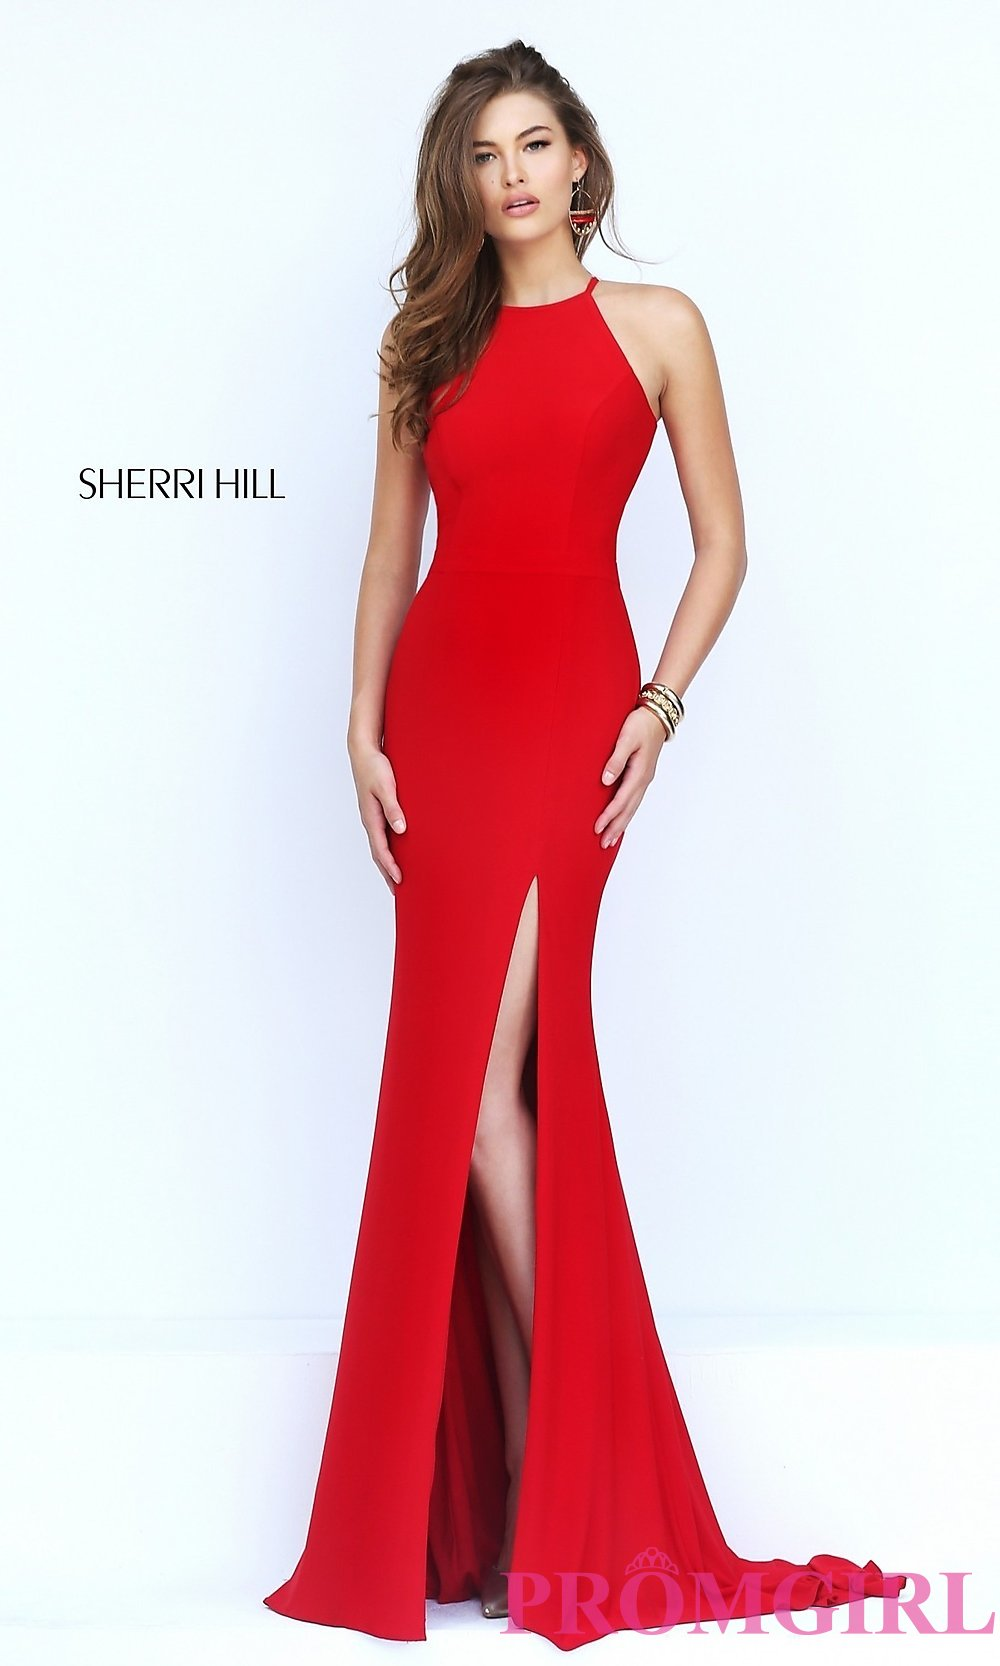 Presenting the sexiness: sexy long dress